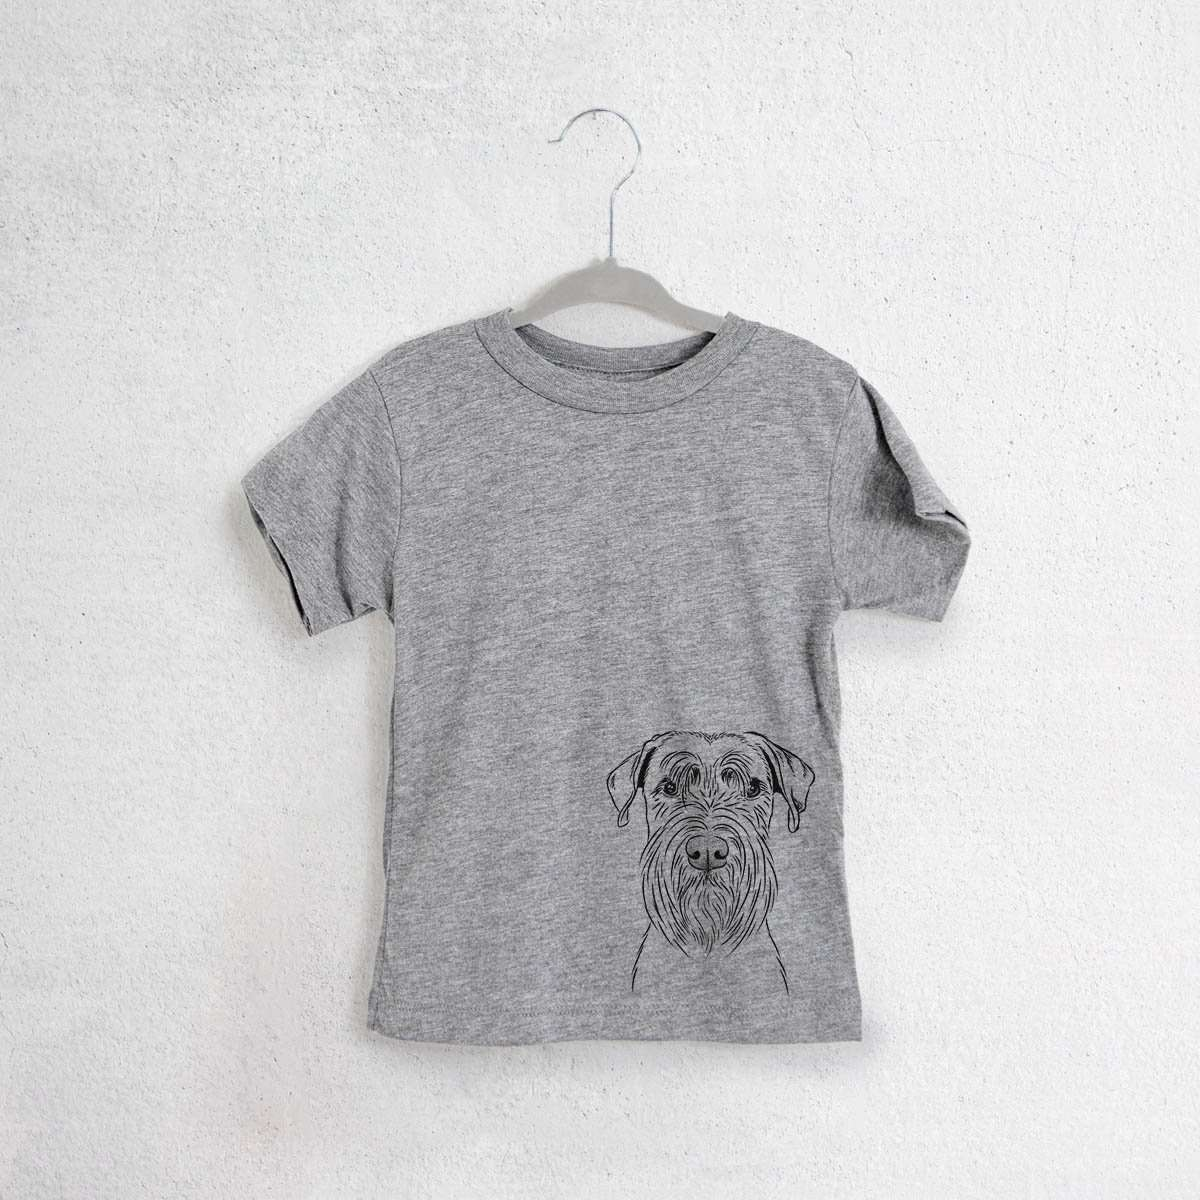 Milton the Standard Schnauzer - Kids/Youth/Toddler Shirt